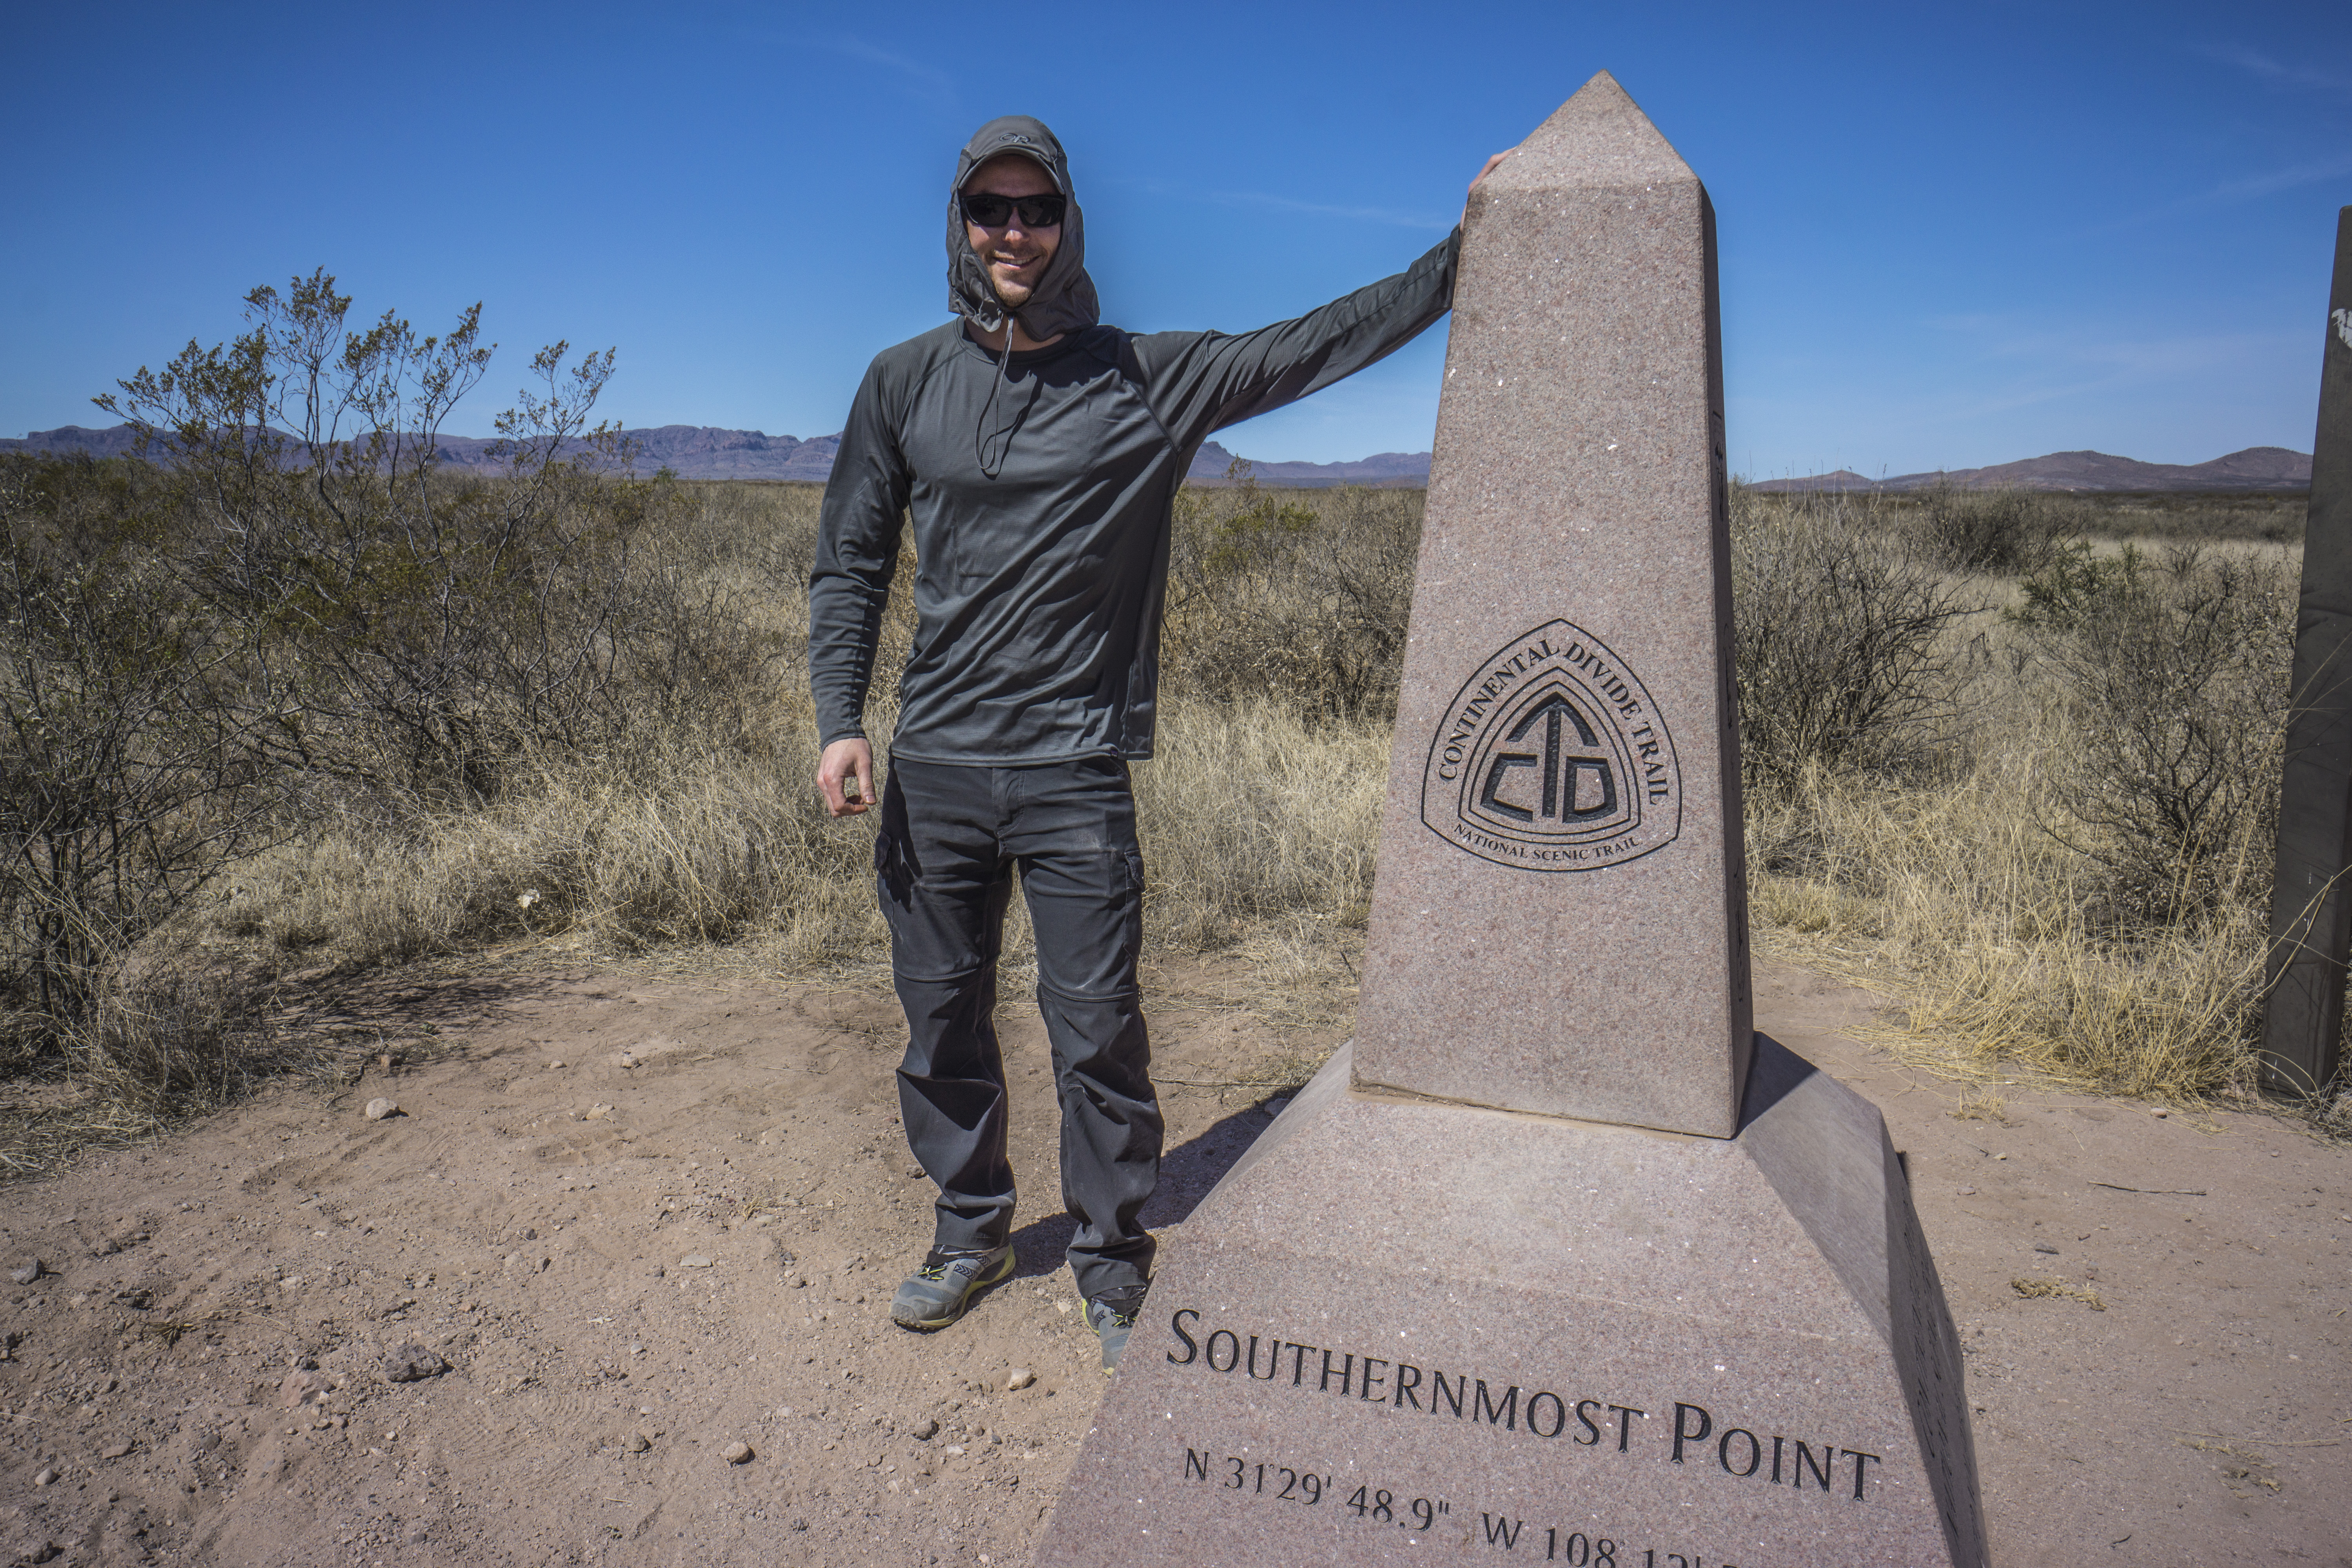 cdt trail journal - hiker at the southern terminus crazy cook monument at the mexico border